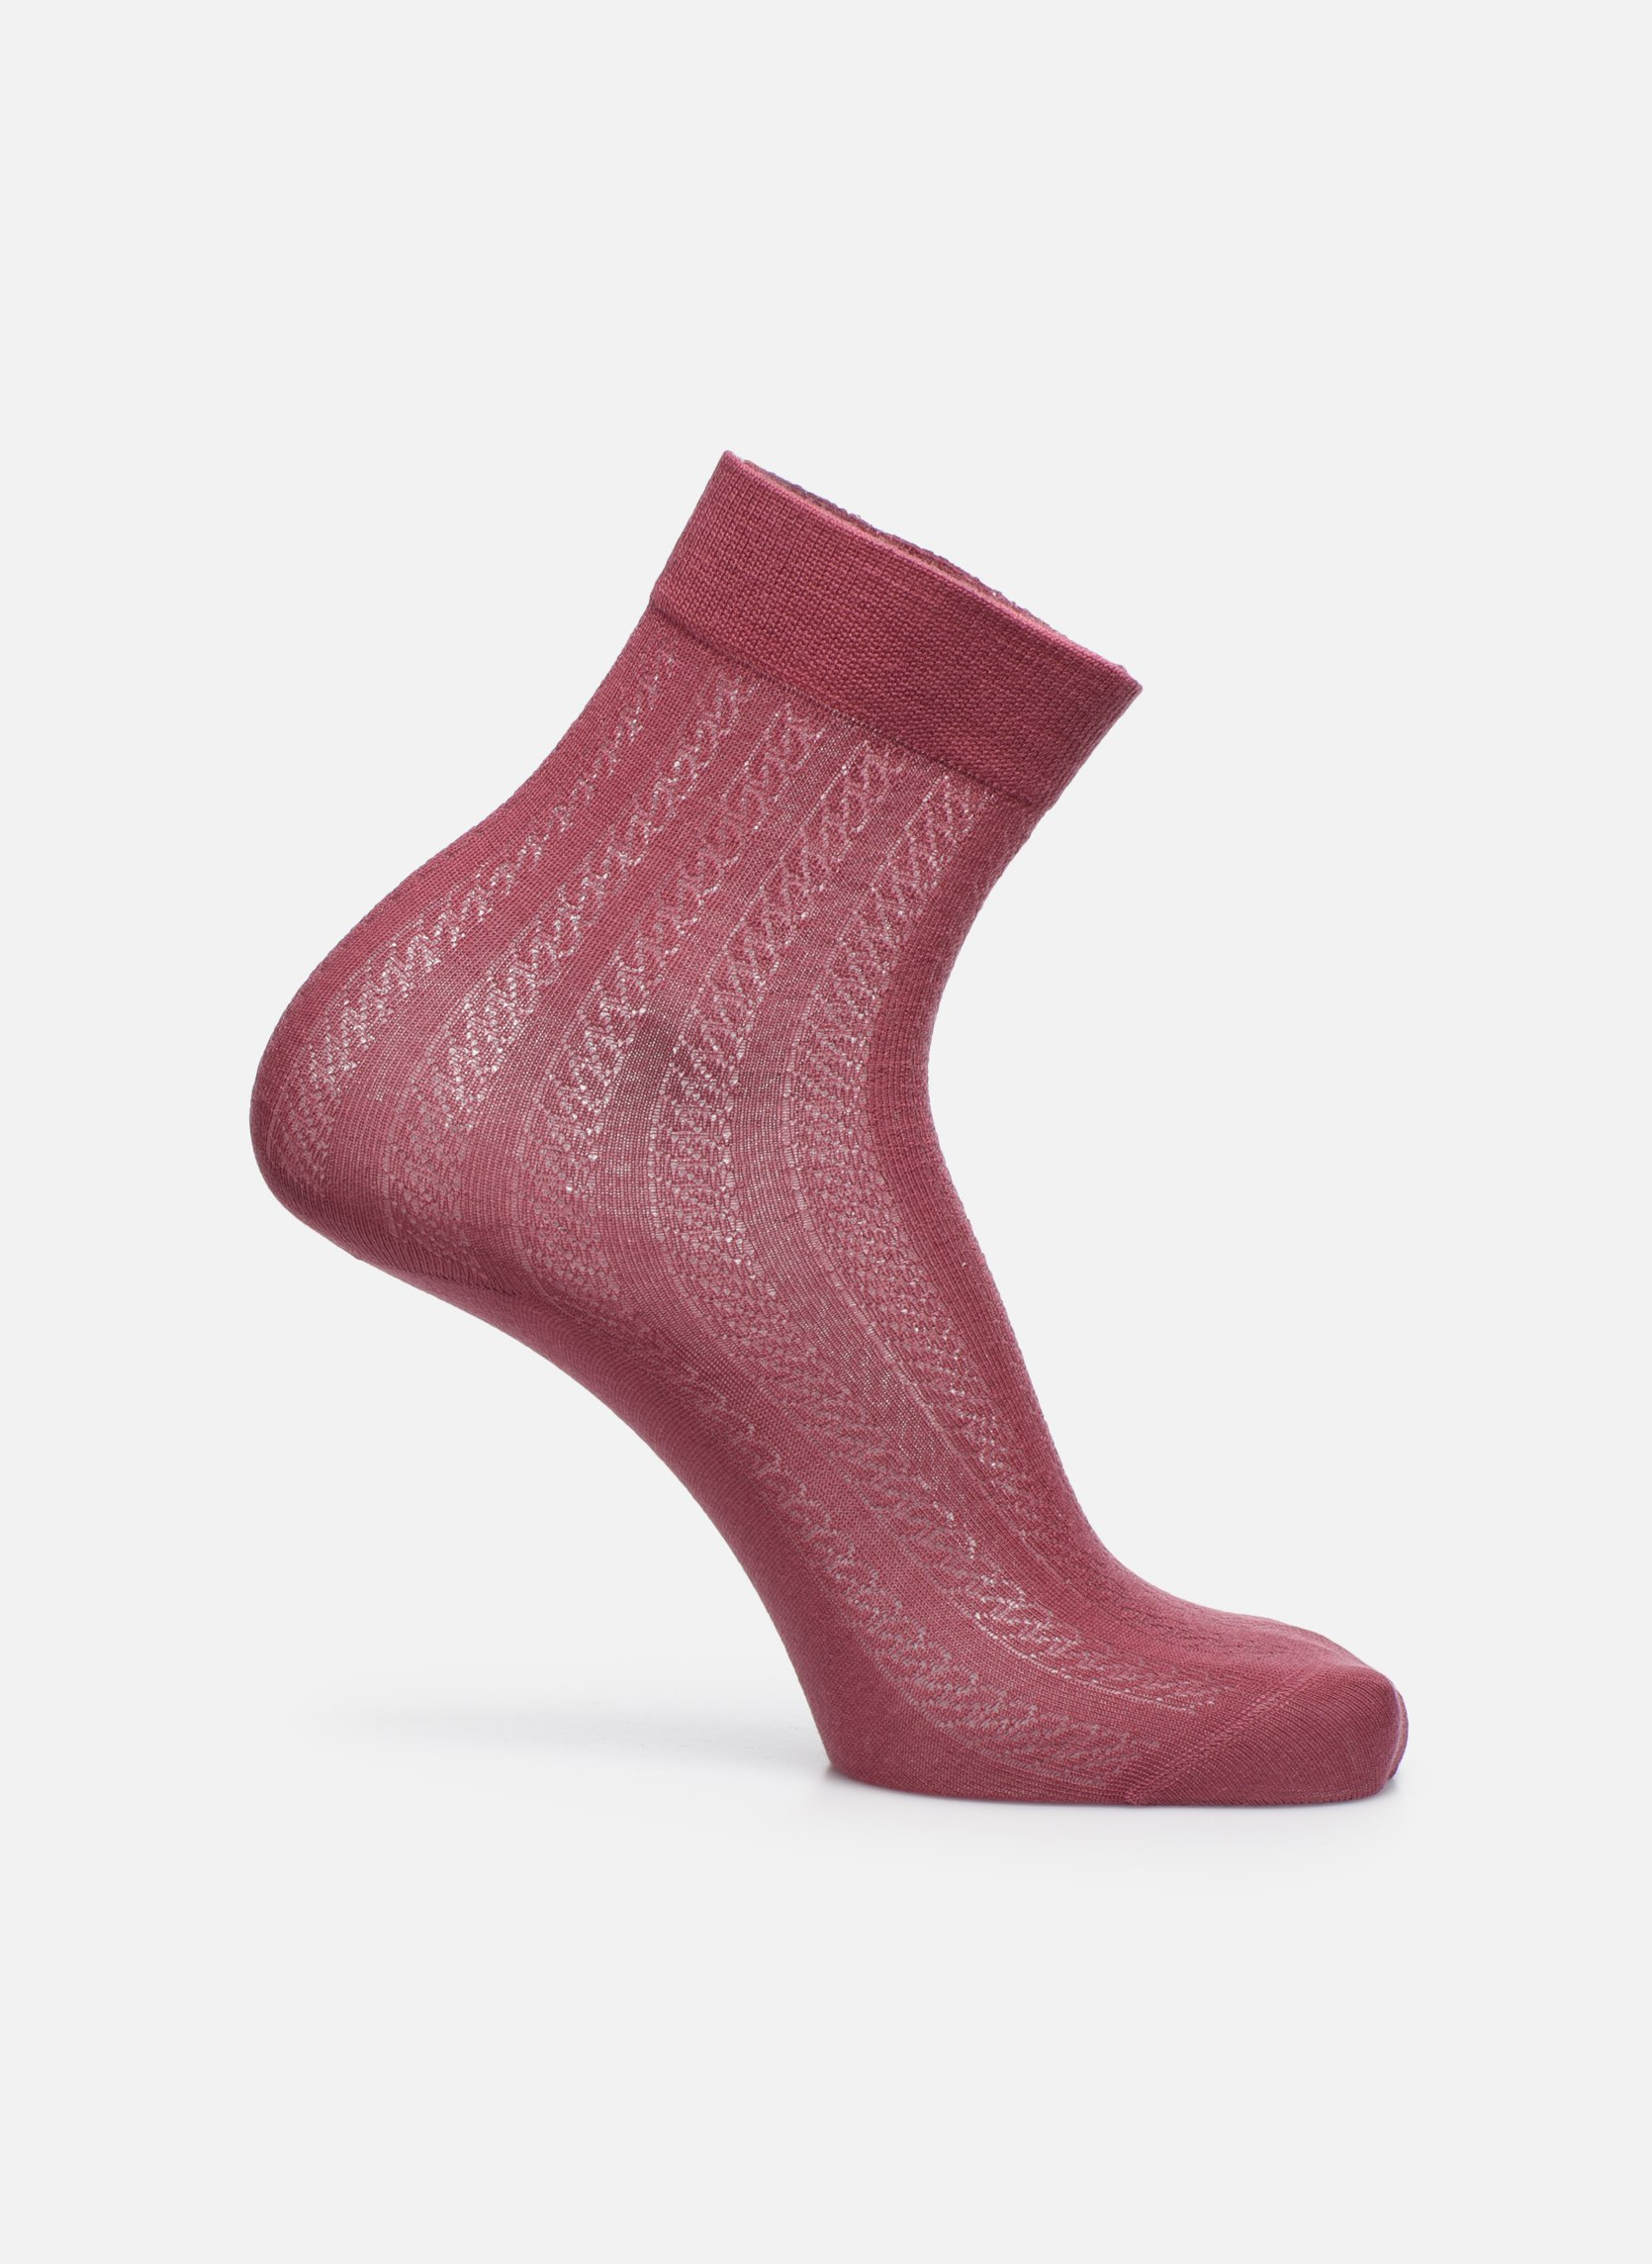 Chaussettes ALLURE 577 - rose